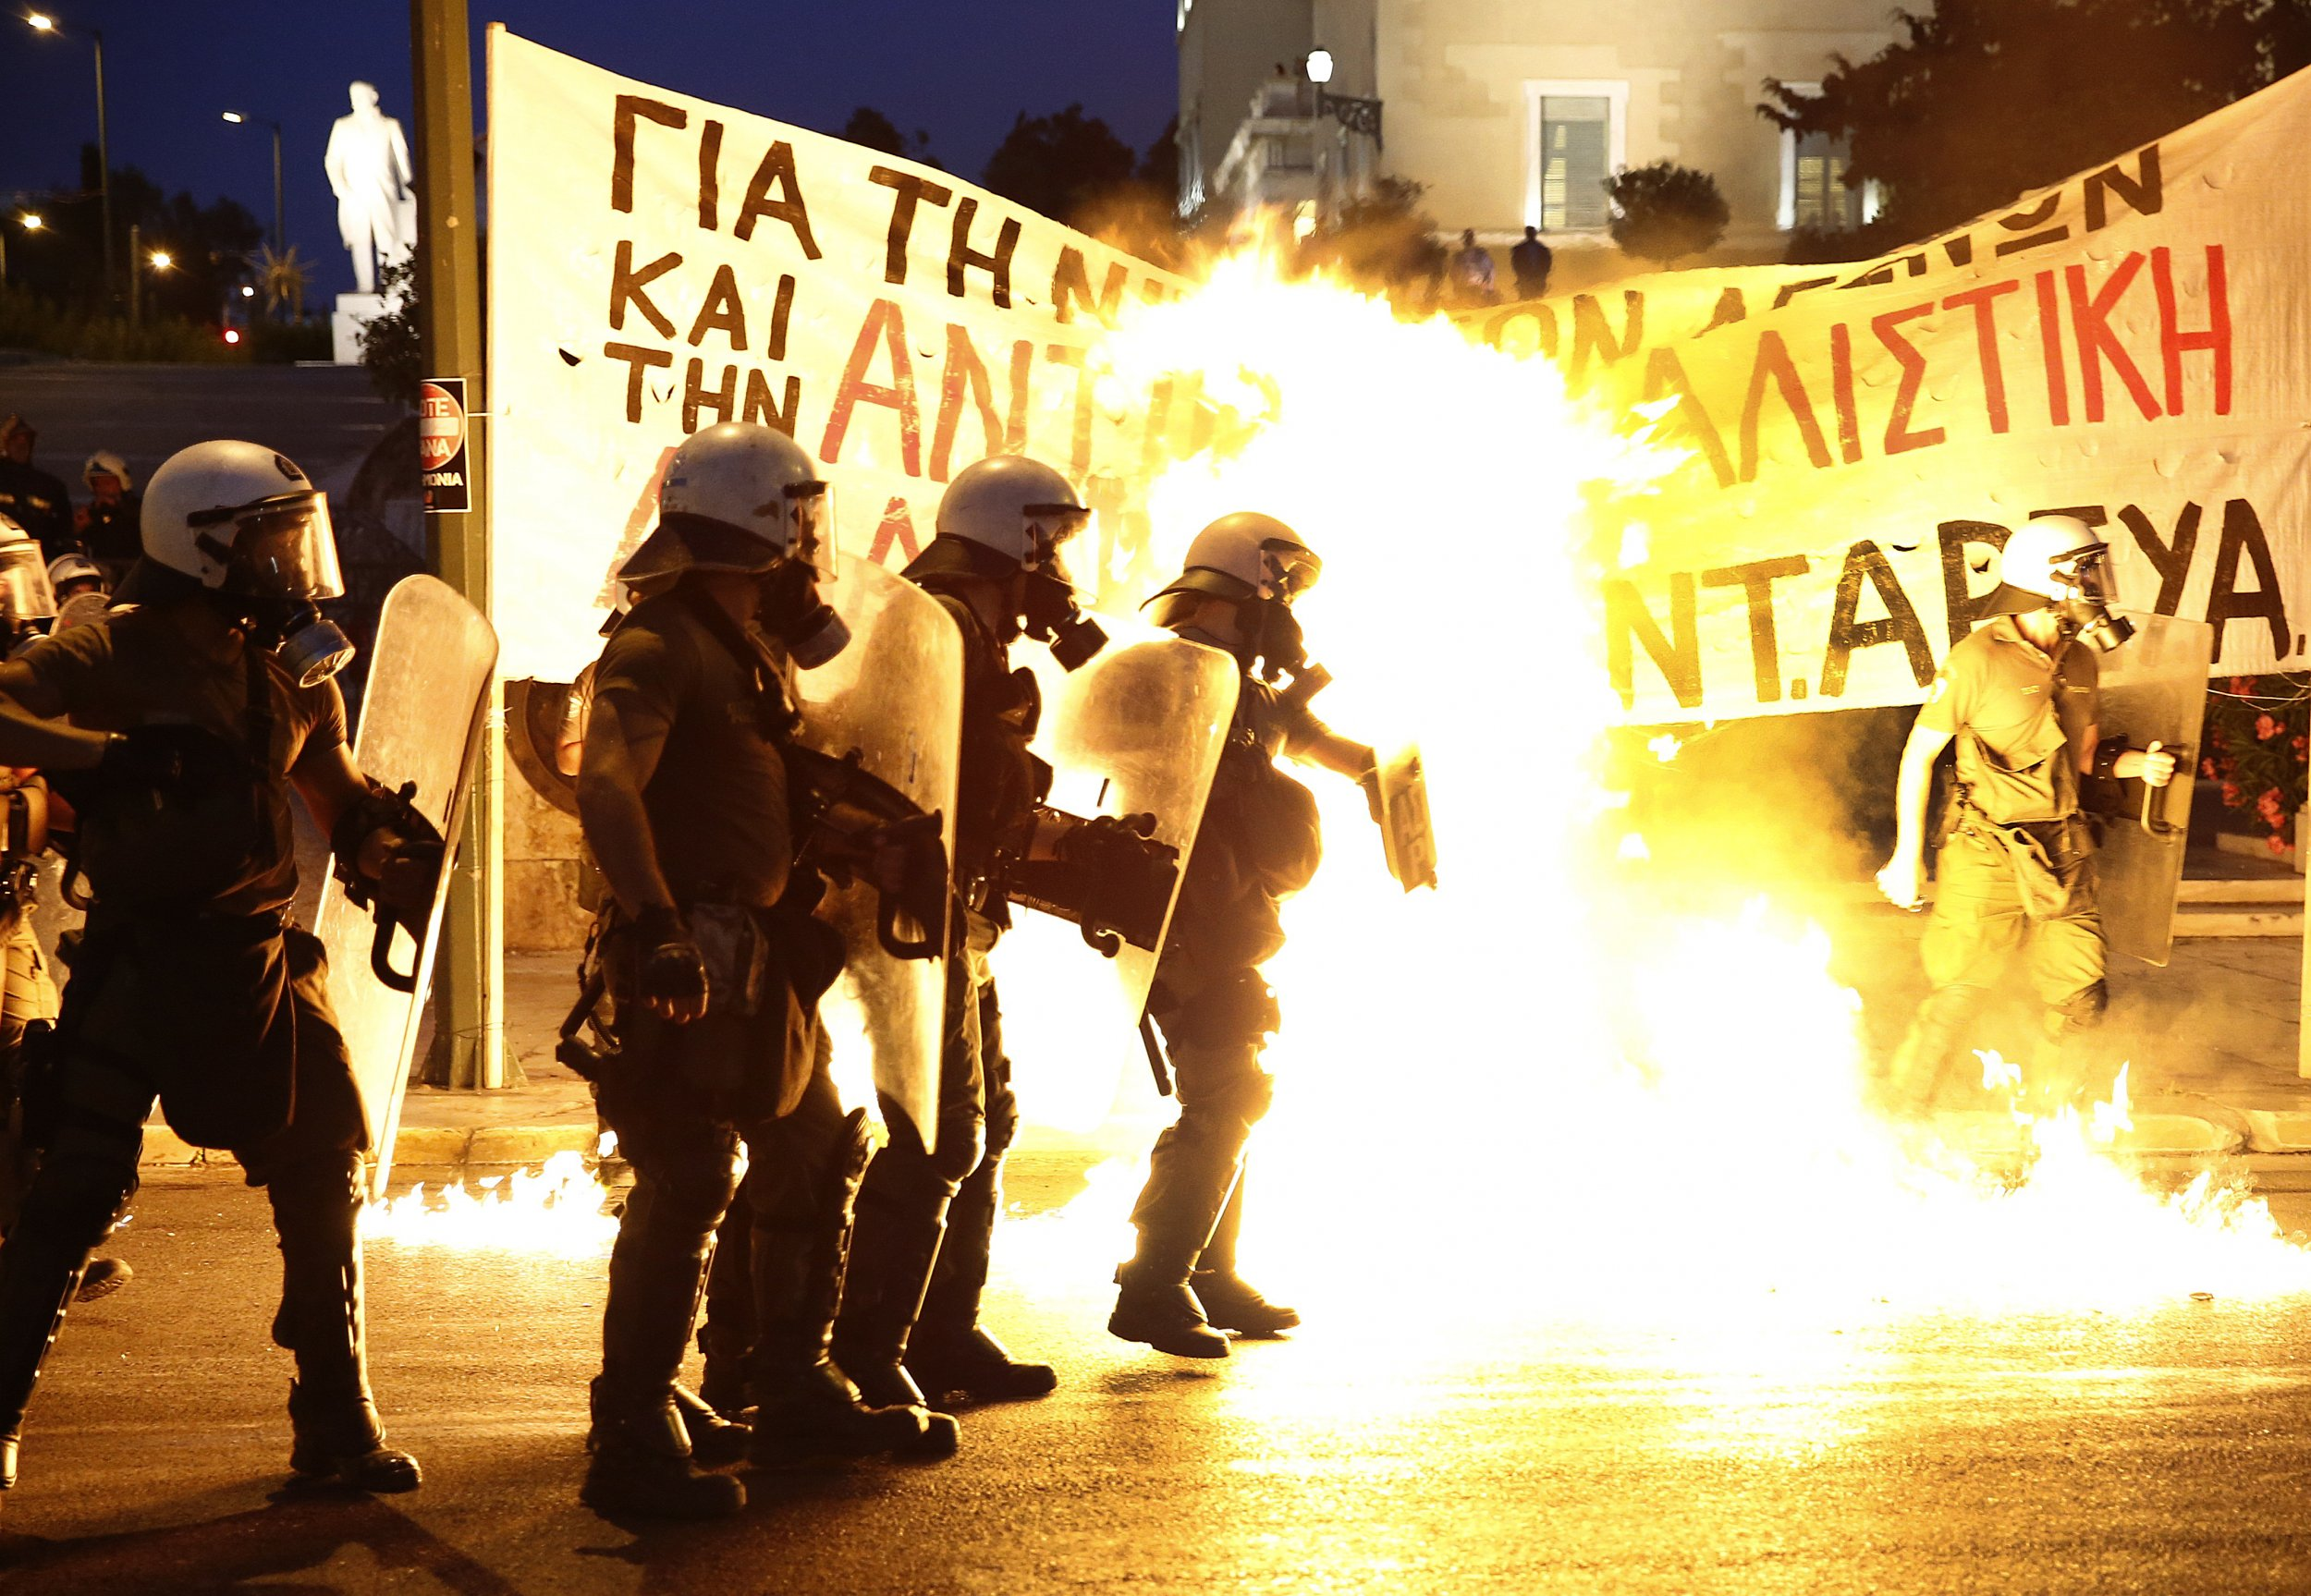 Violence in Athens